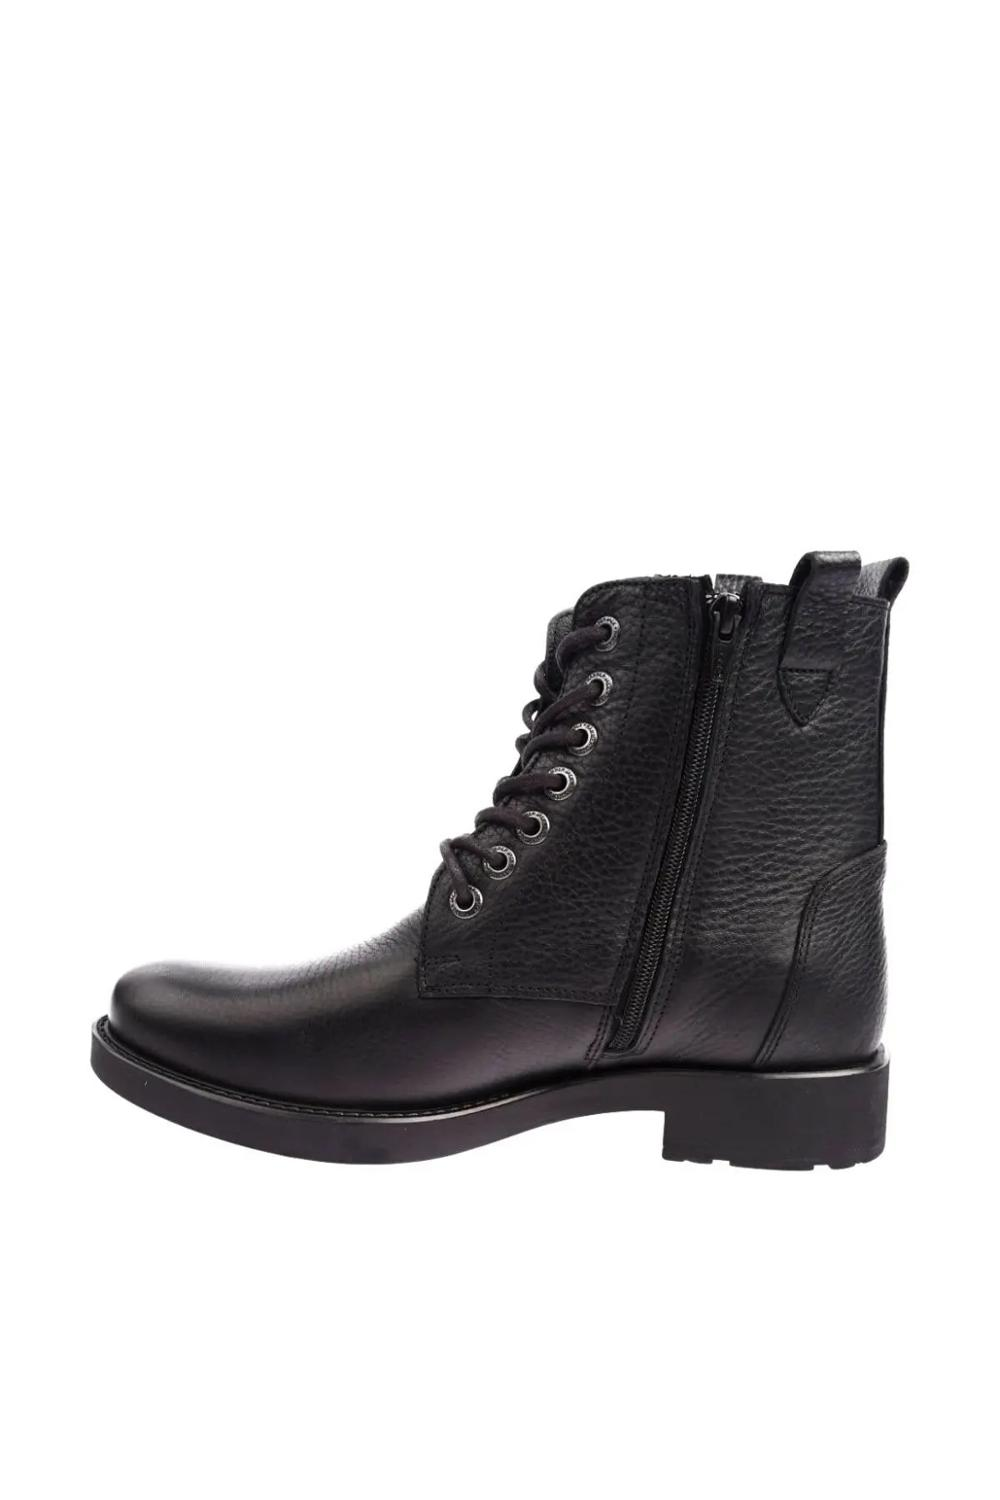 Hammer Jack Male Genuine Leather Boots 102 15200-M 4